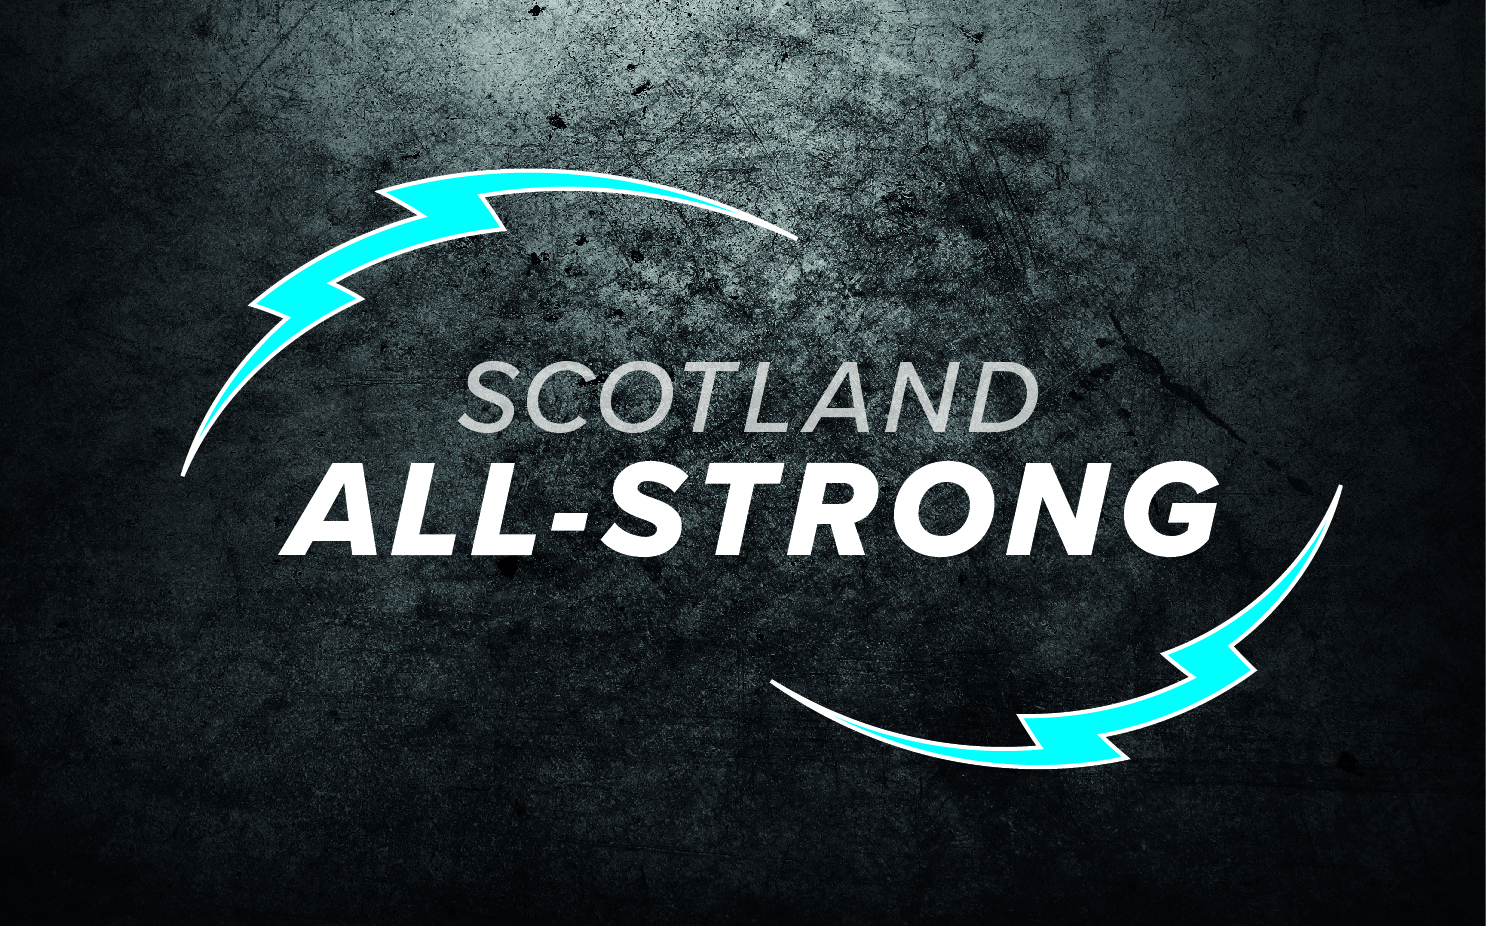 Scotland All-Strong | Scotland All-Strong Perth Scotland